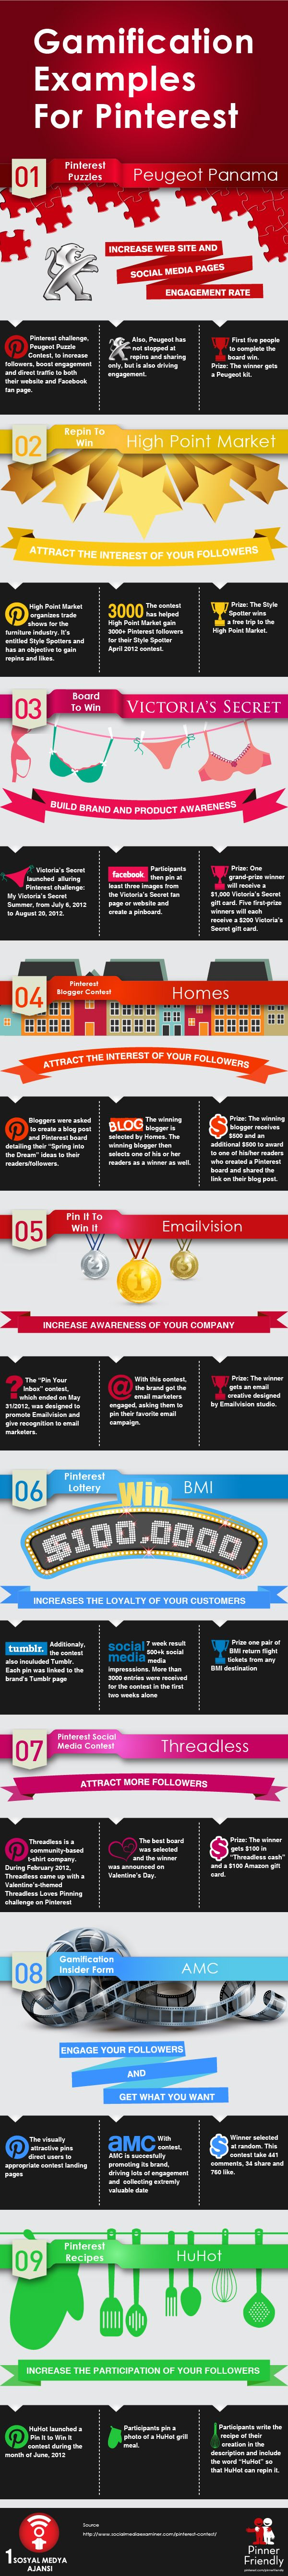 #Gamification Examples for #Pinterest